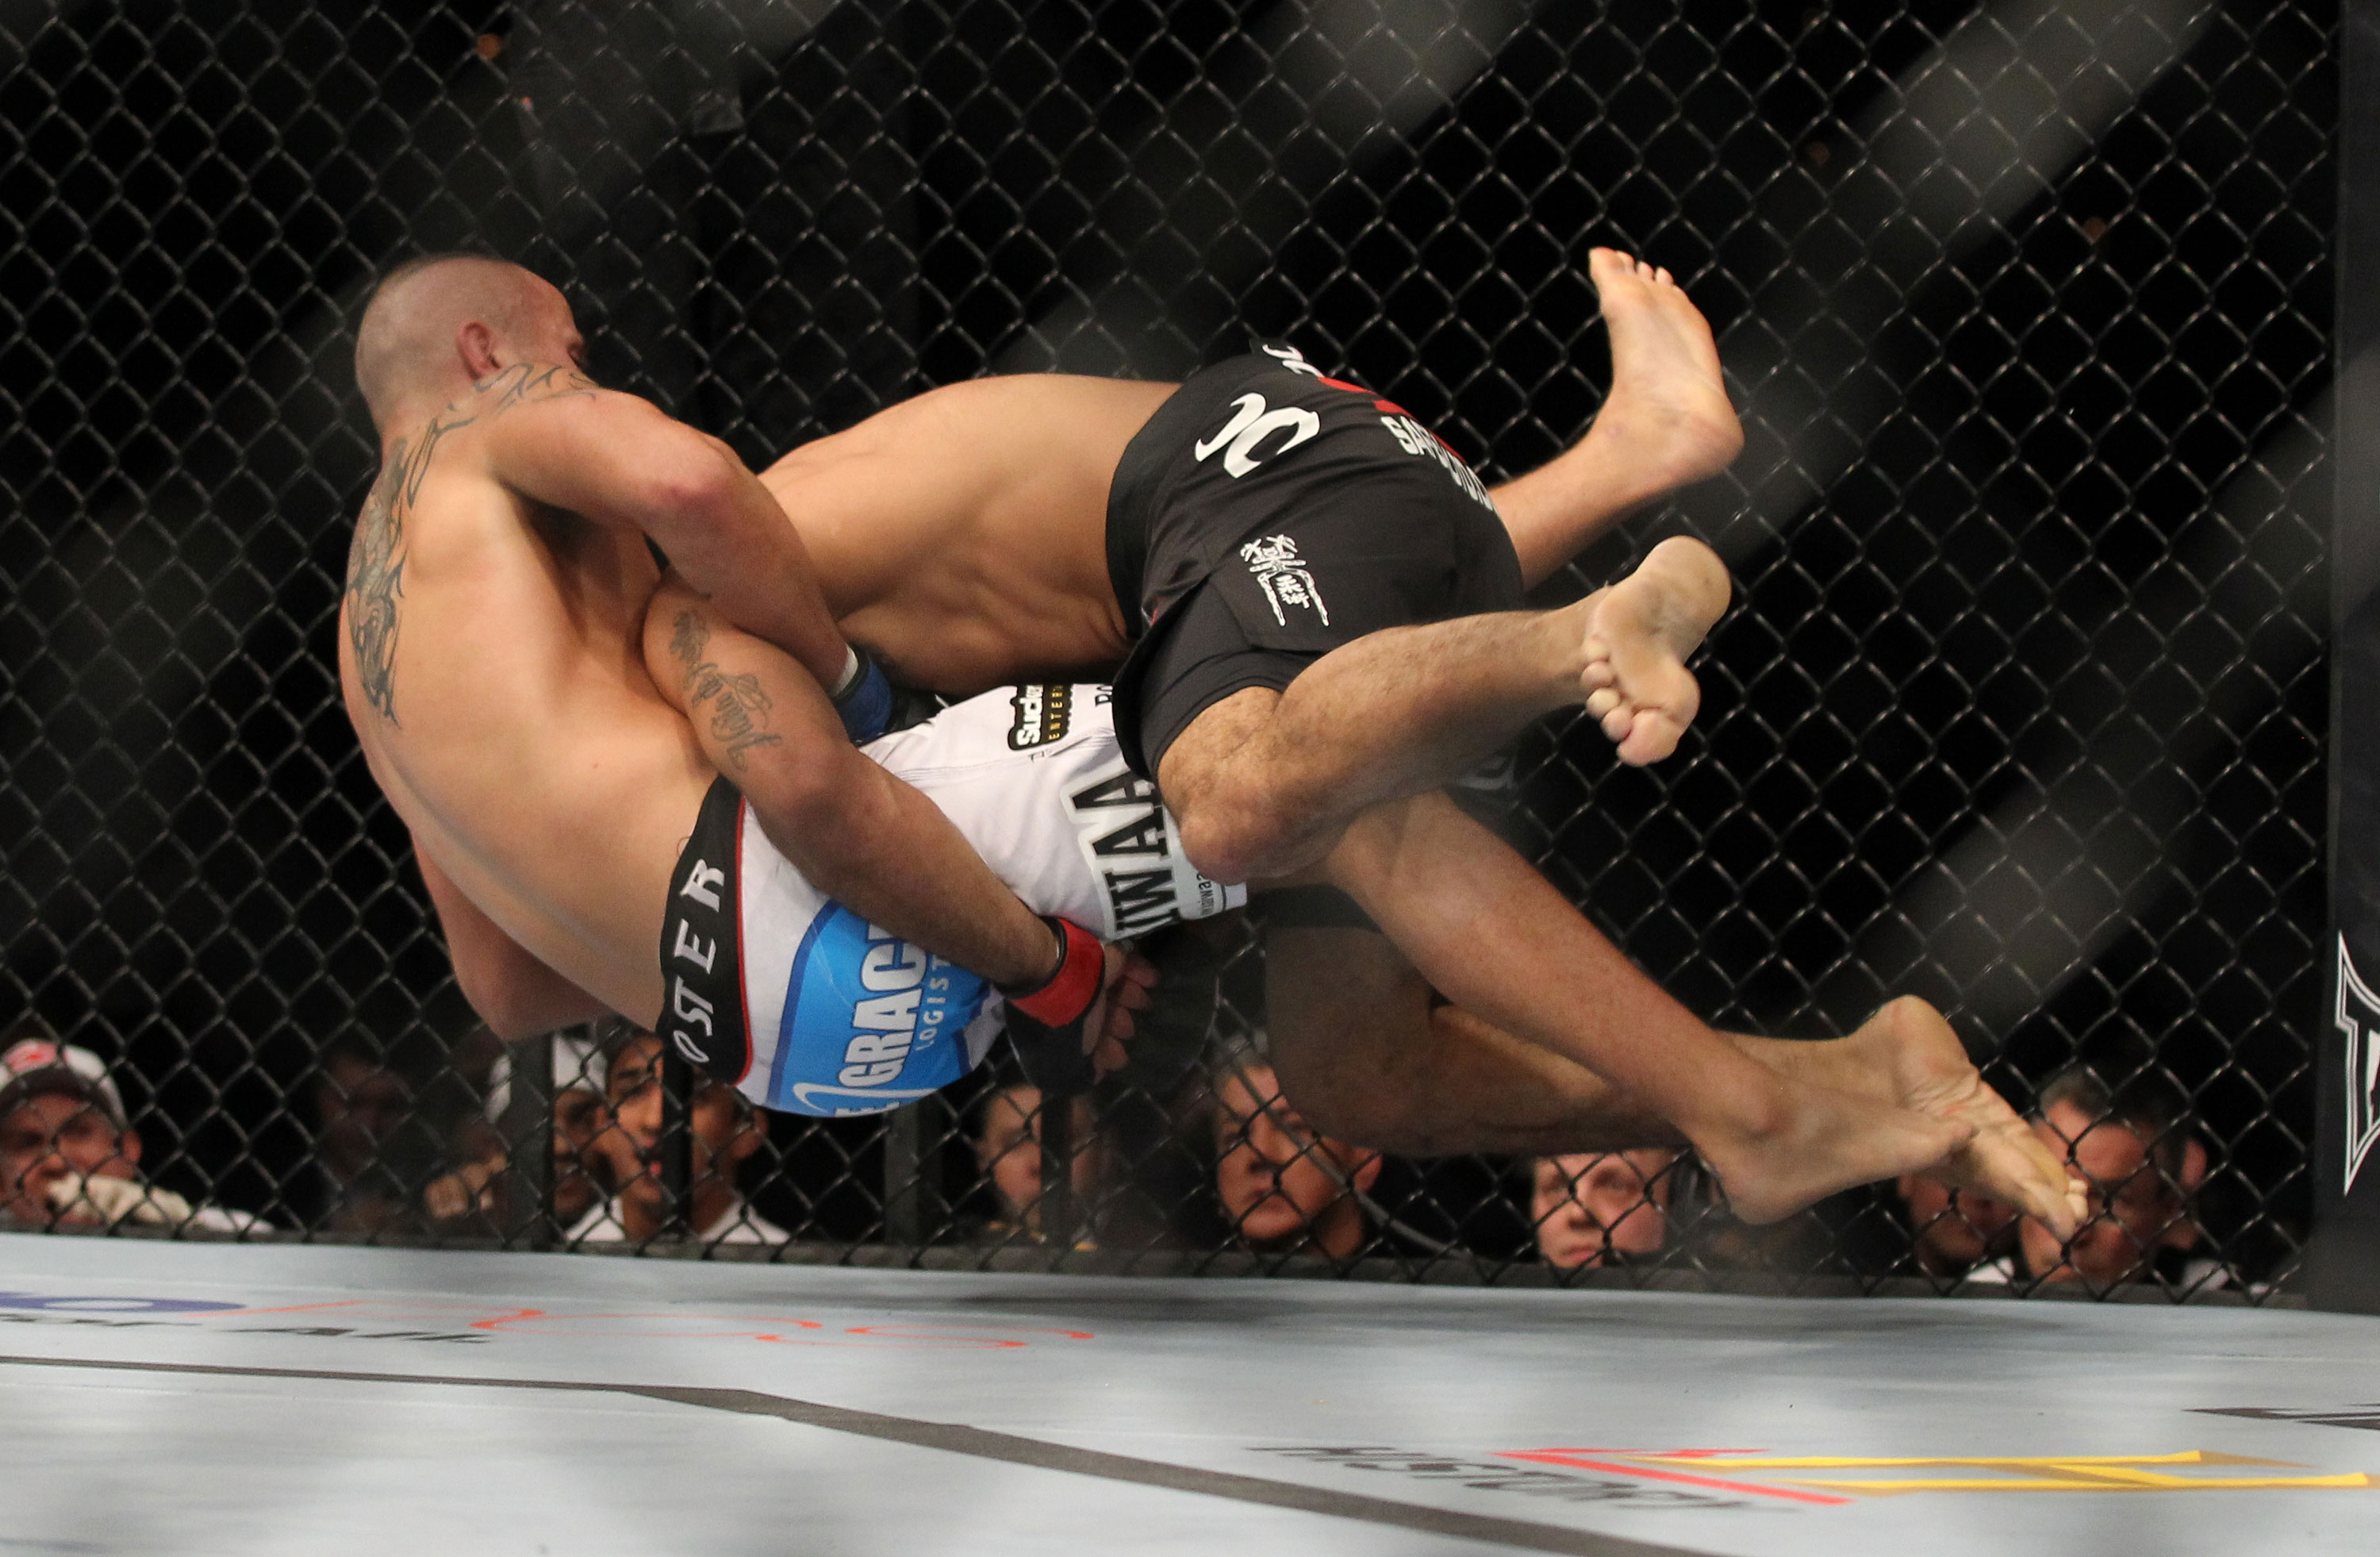 LAS VEGAS, NV - FEBRUARY 04:  Rafael Natal (black shorts) takes down Michael Kuiper during the UFC 143 event at Mandalay Bay Events Center on February 4, 2012 in Las Vegas, Nevada.  (Photo by Josh Hedges/Zuffa LLC/Zuffa LLC via Getty Images) *** Local Caption *** Rafael Natal; Michael Kuiper